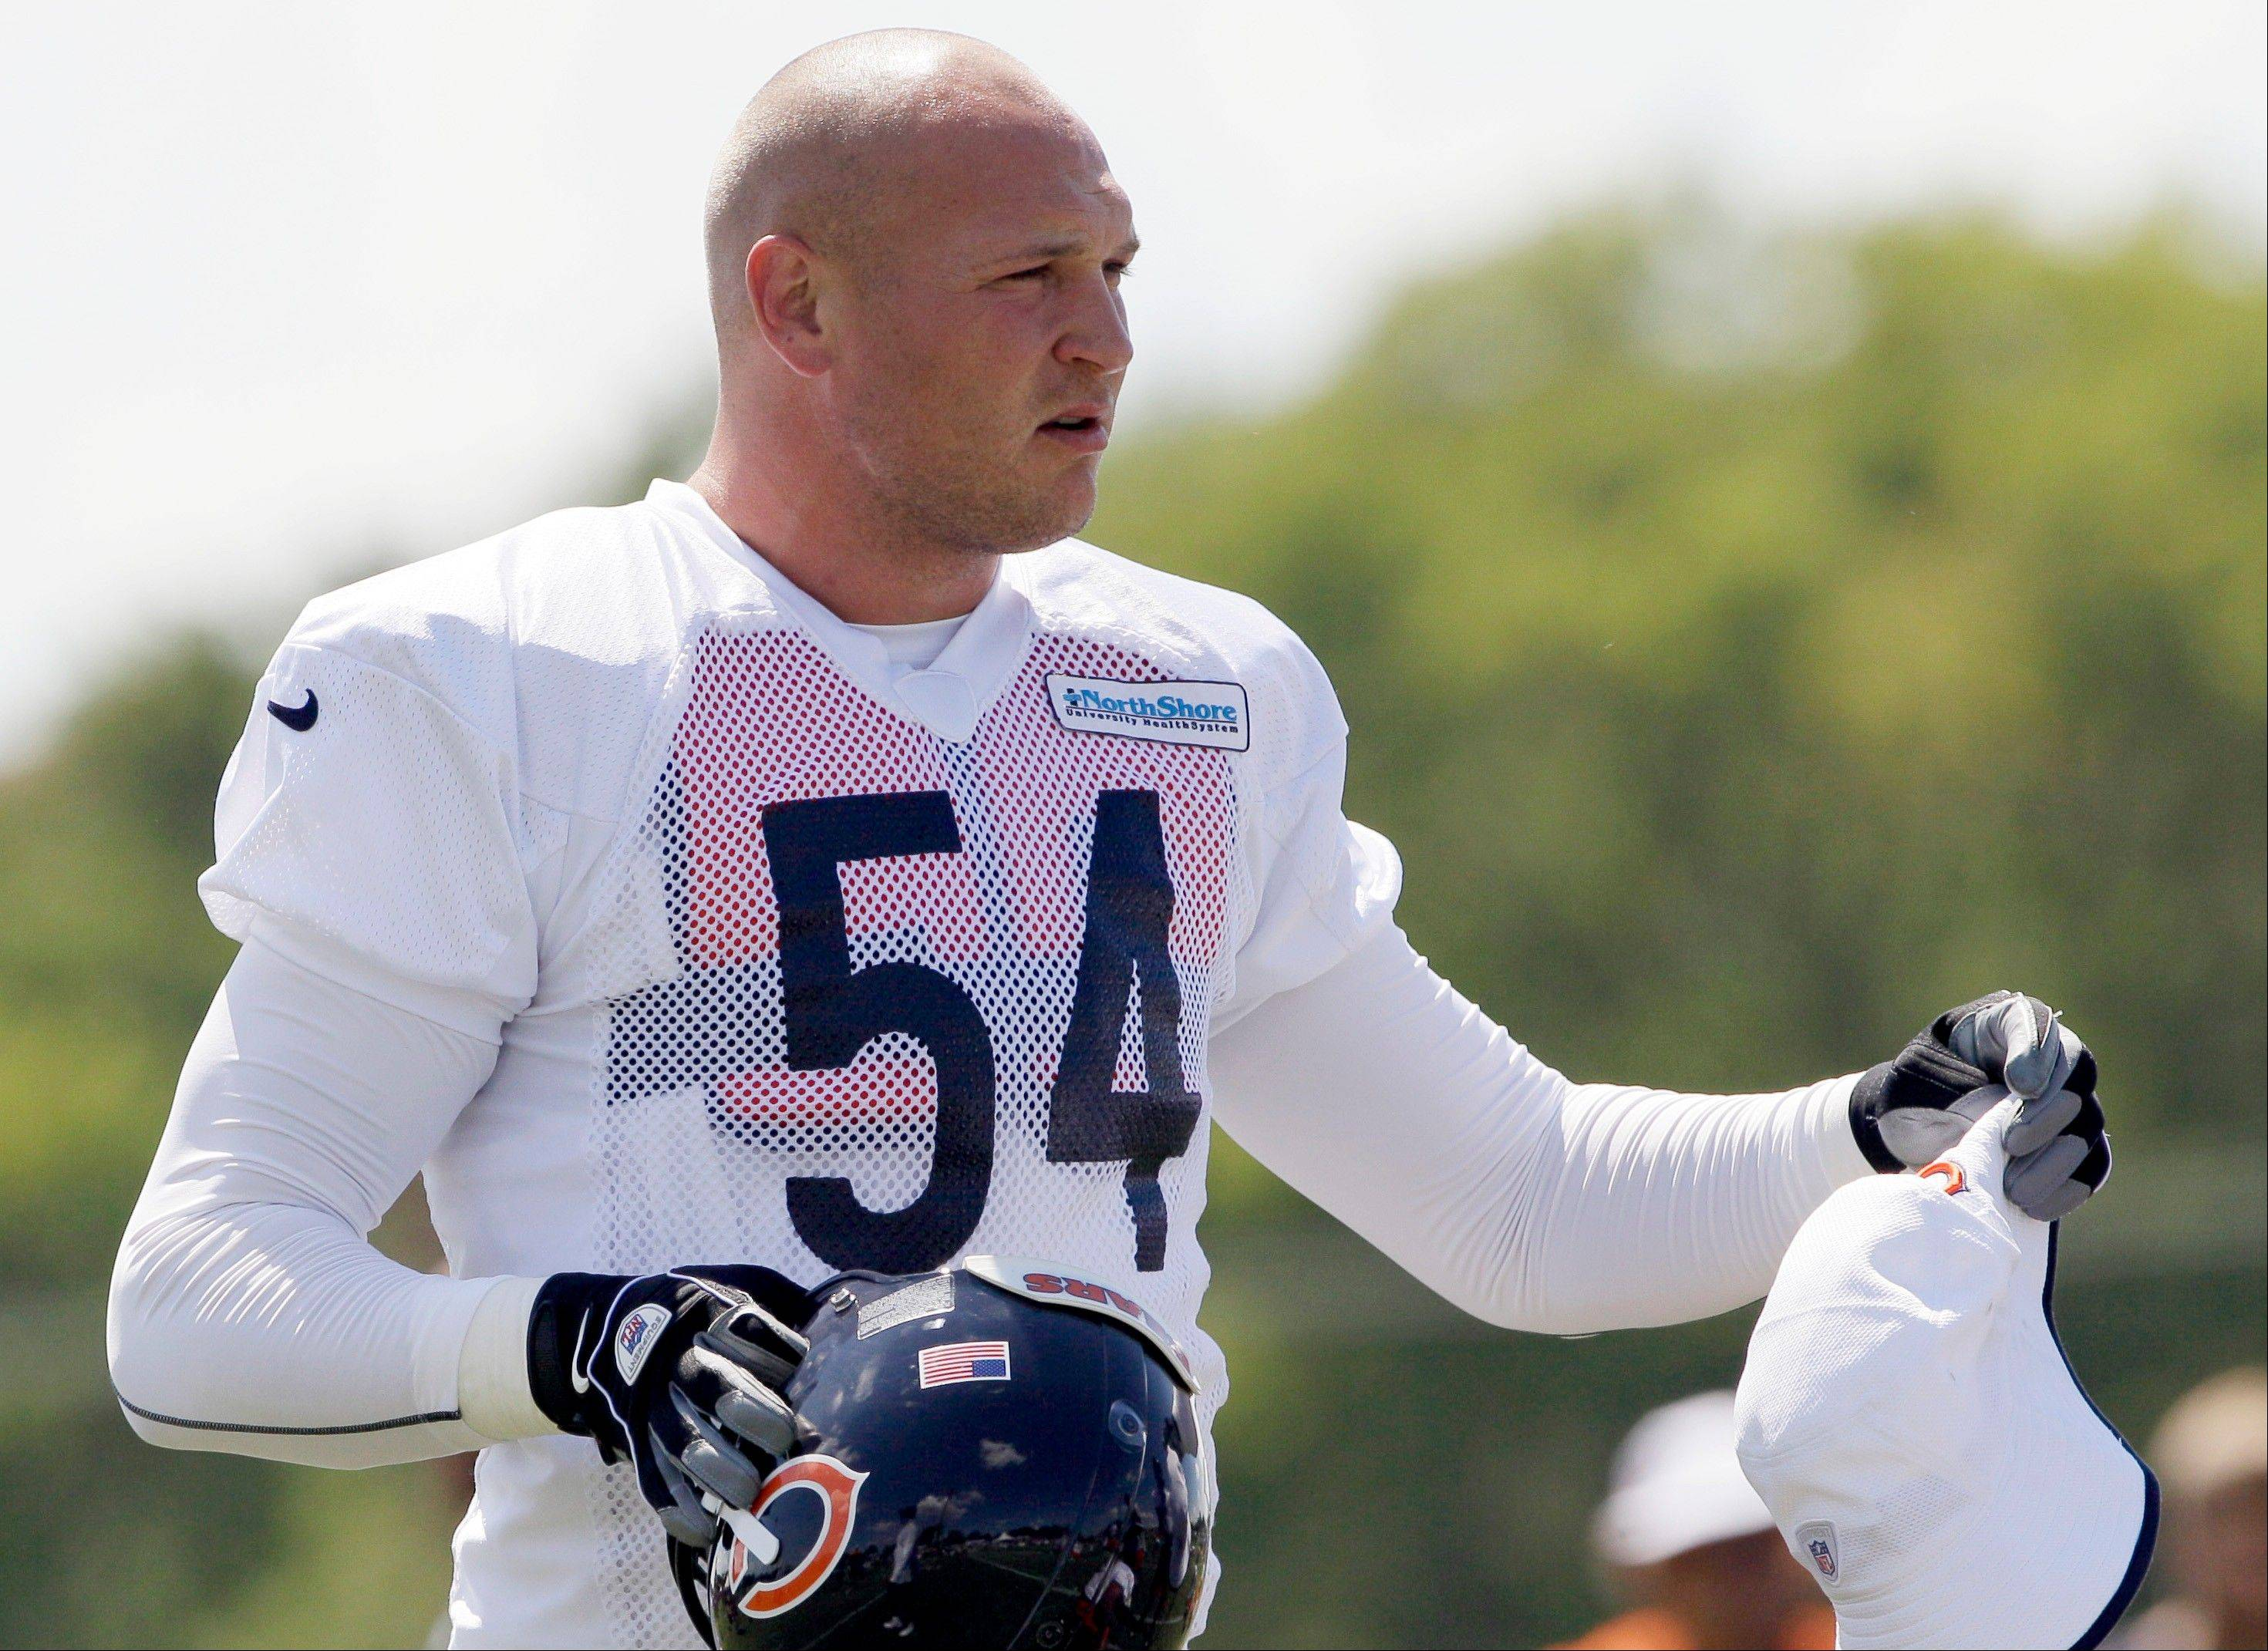 Linebacker Brian Urlacher, here watching teammates practice in late July, returned to the practice field Monday and is expected to be on the field when the Bears open the season Sunday.